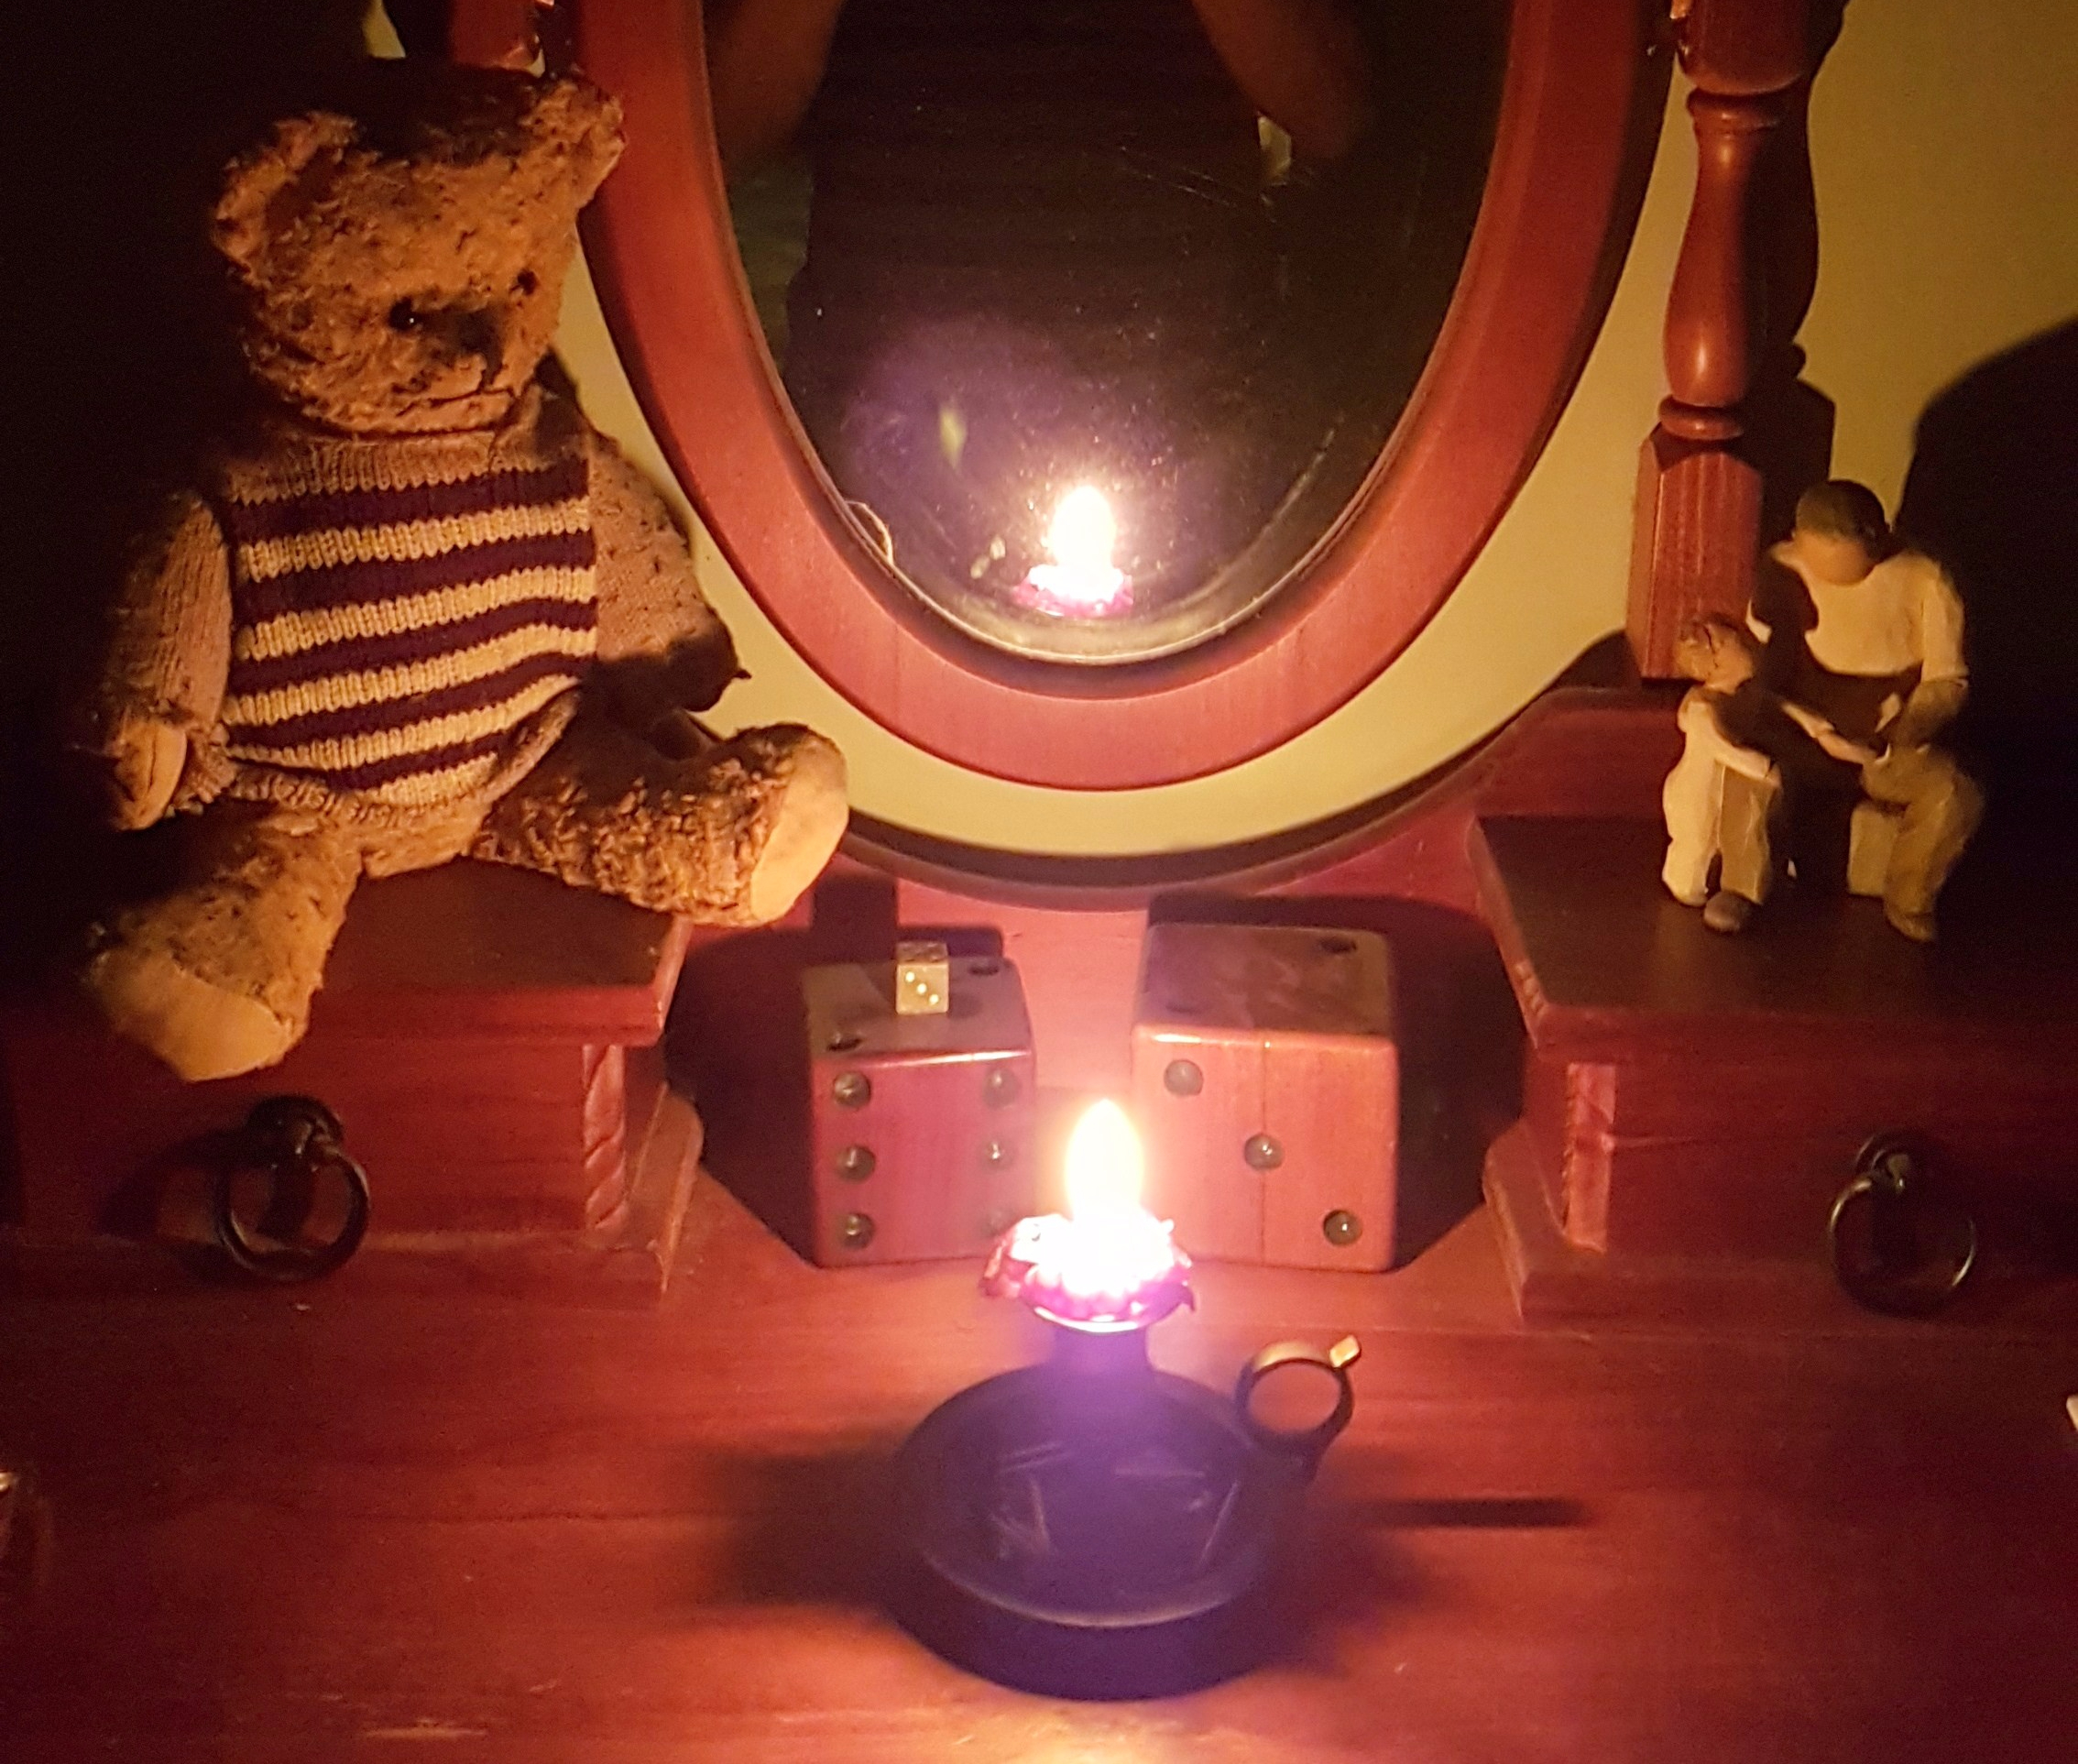 2017-03-24 Bedtime candle 1